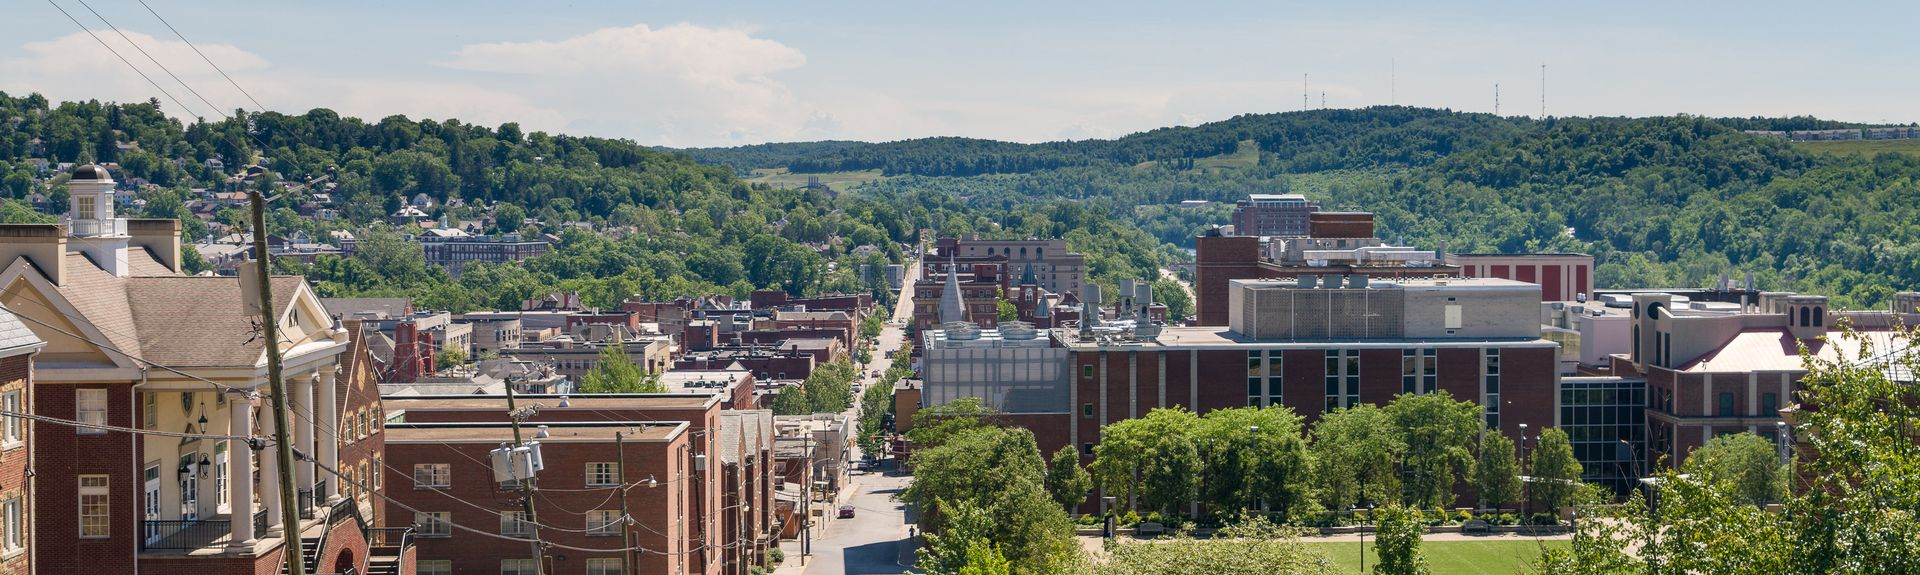 Morgantown, West Virginia, United States of America